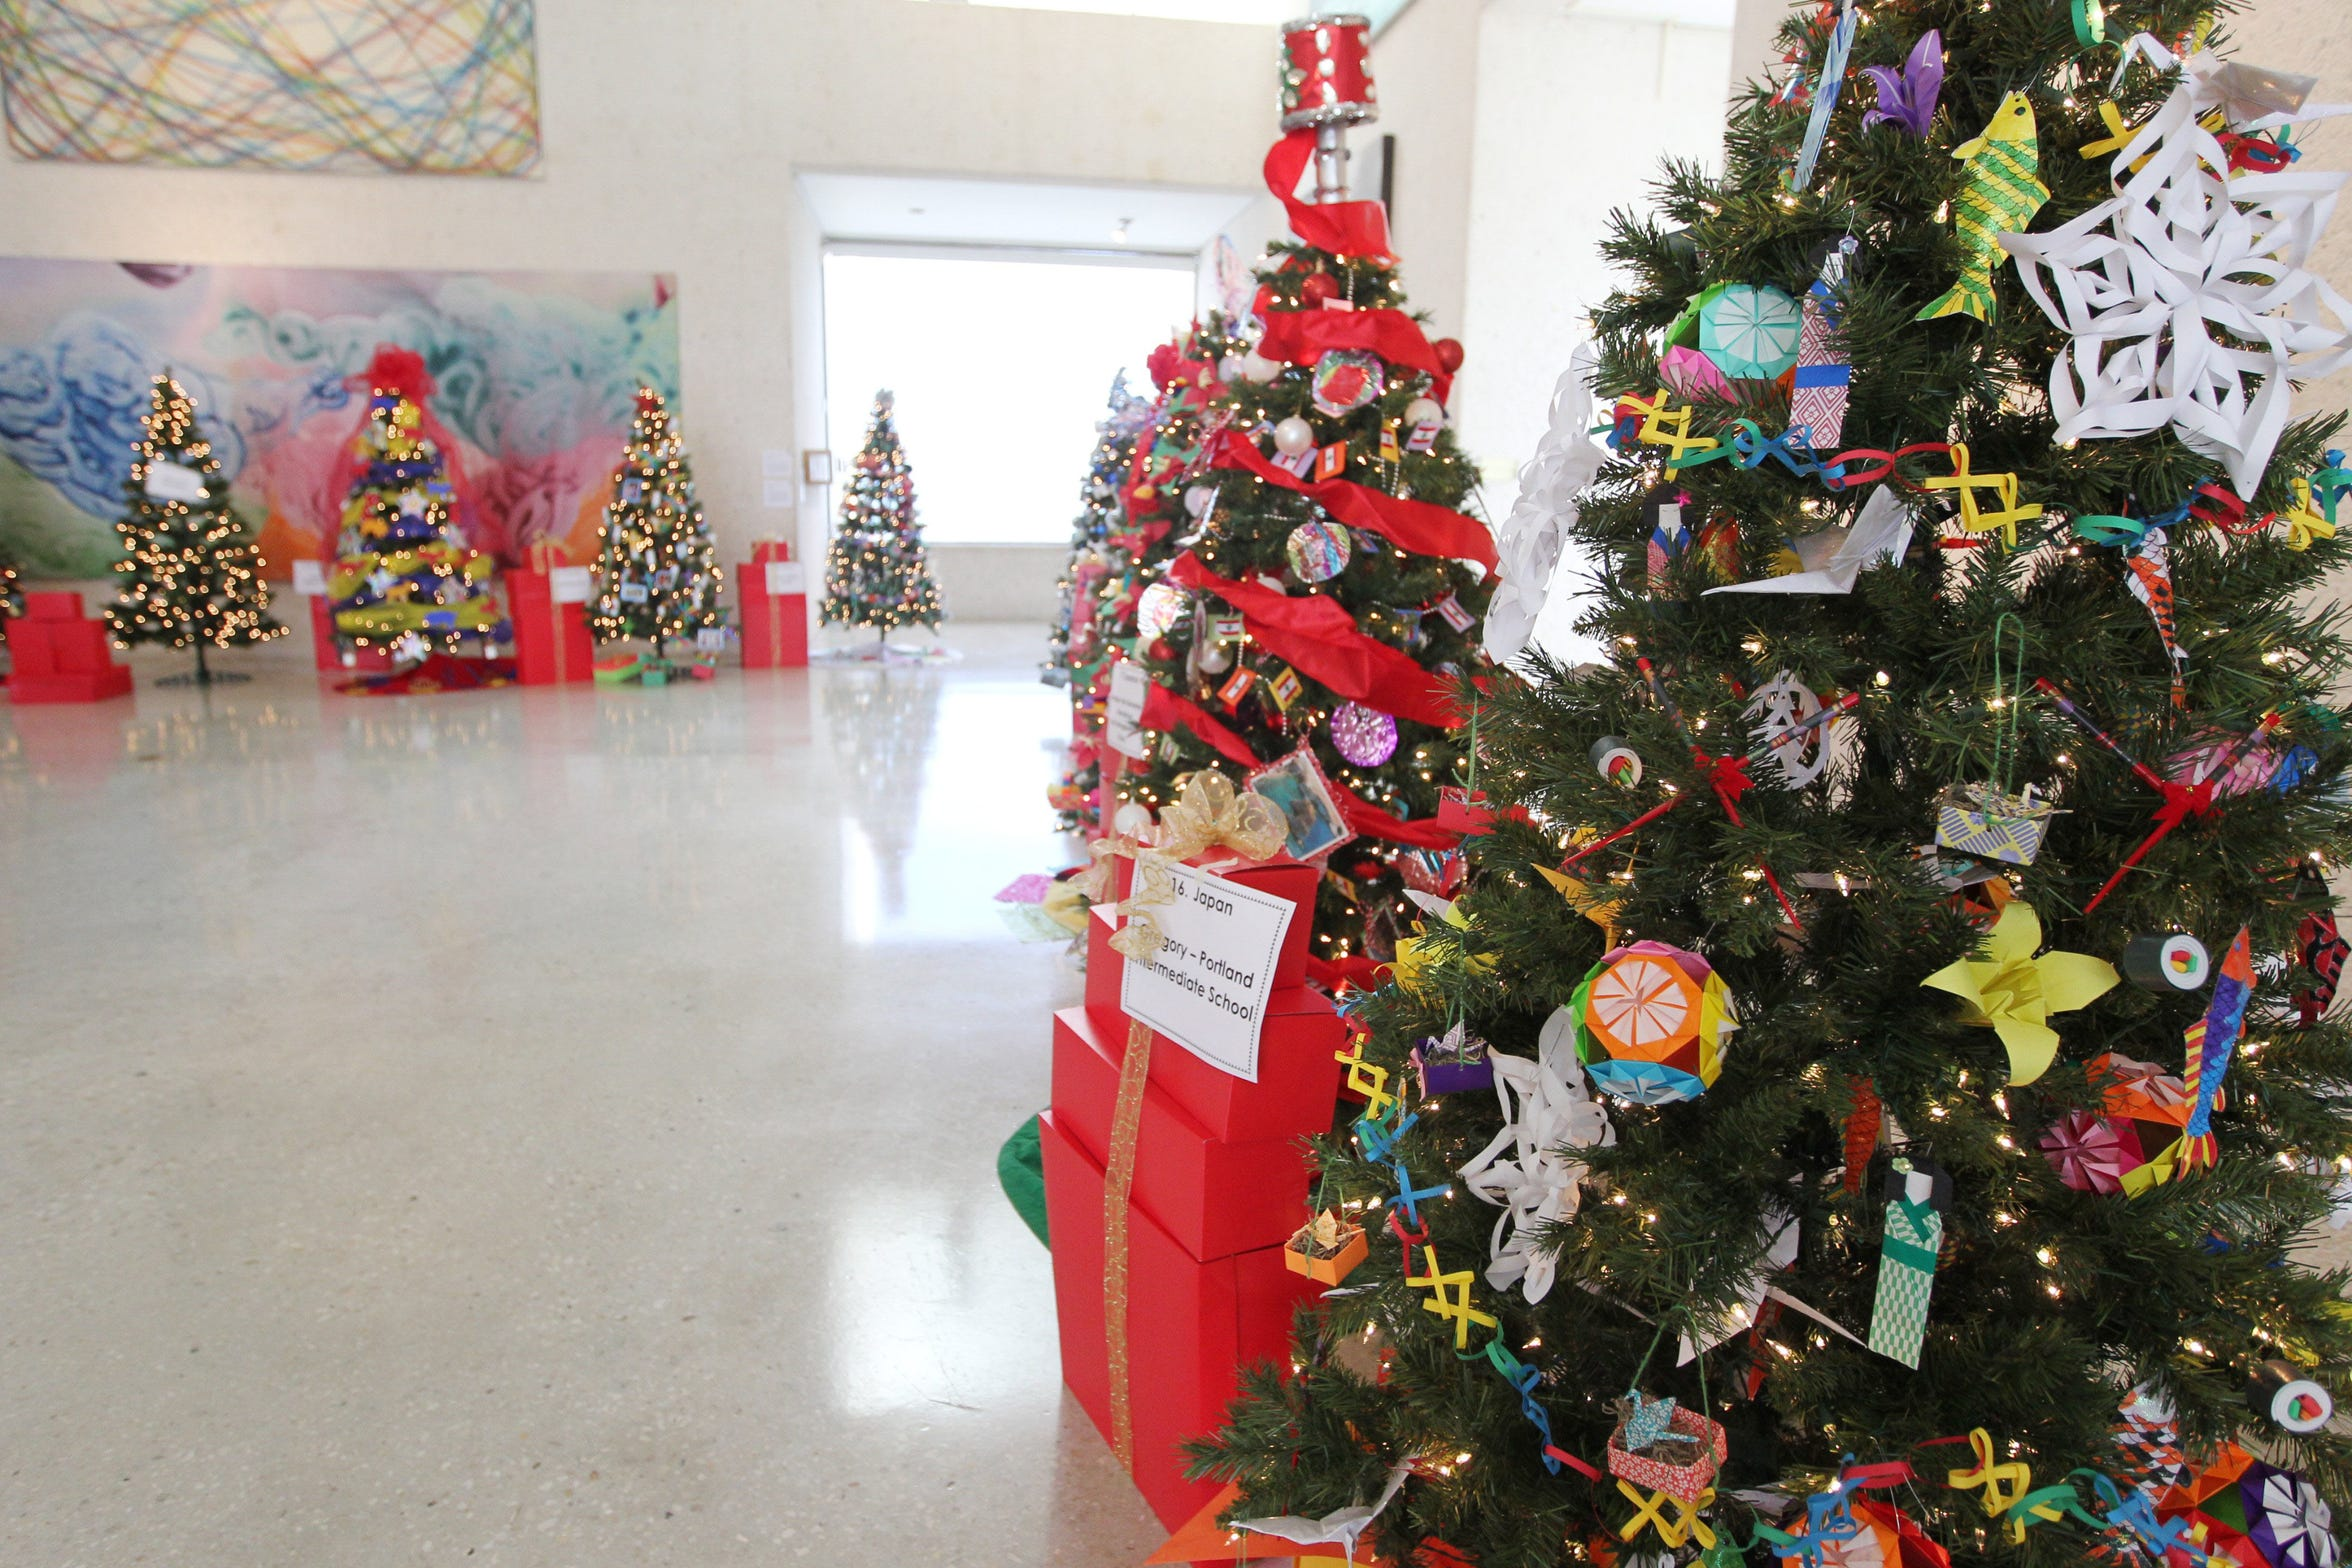 An annual favorite, the Christmas Tree Forest at the Art Museum of South Texas is a collaborative project sponsored by the Junior League of Corpus Christi, H-E-B and the museum.